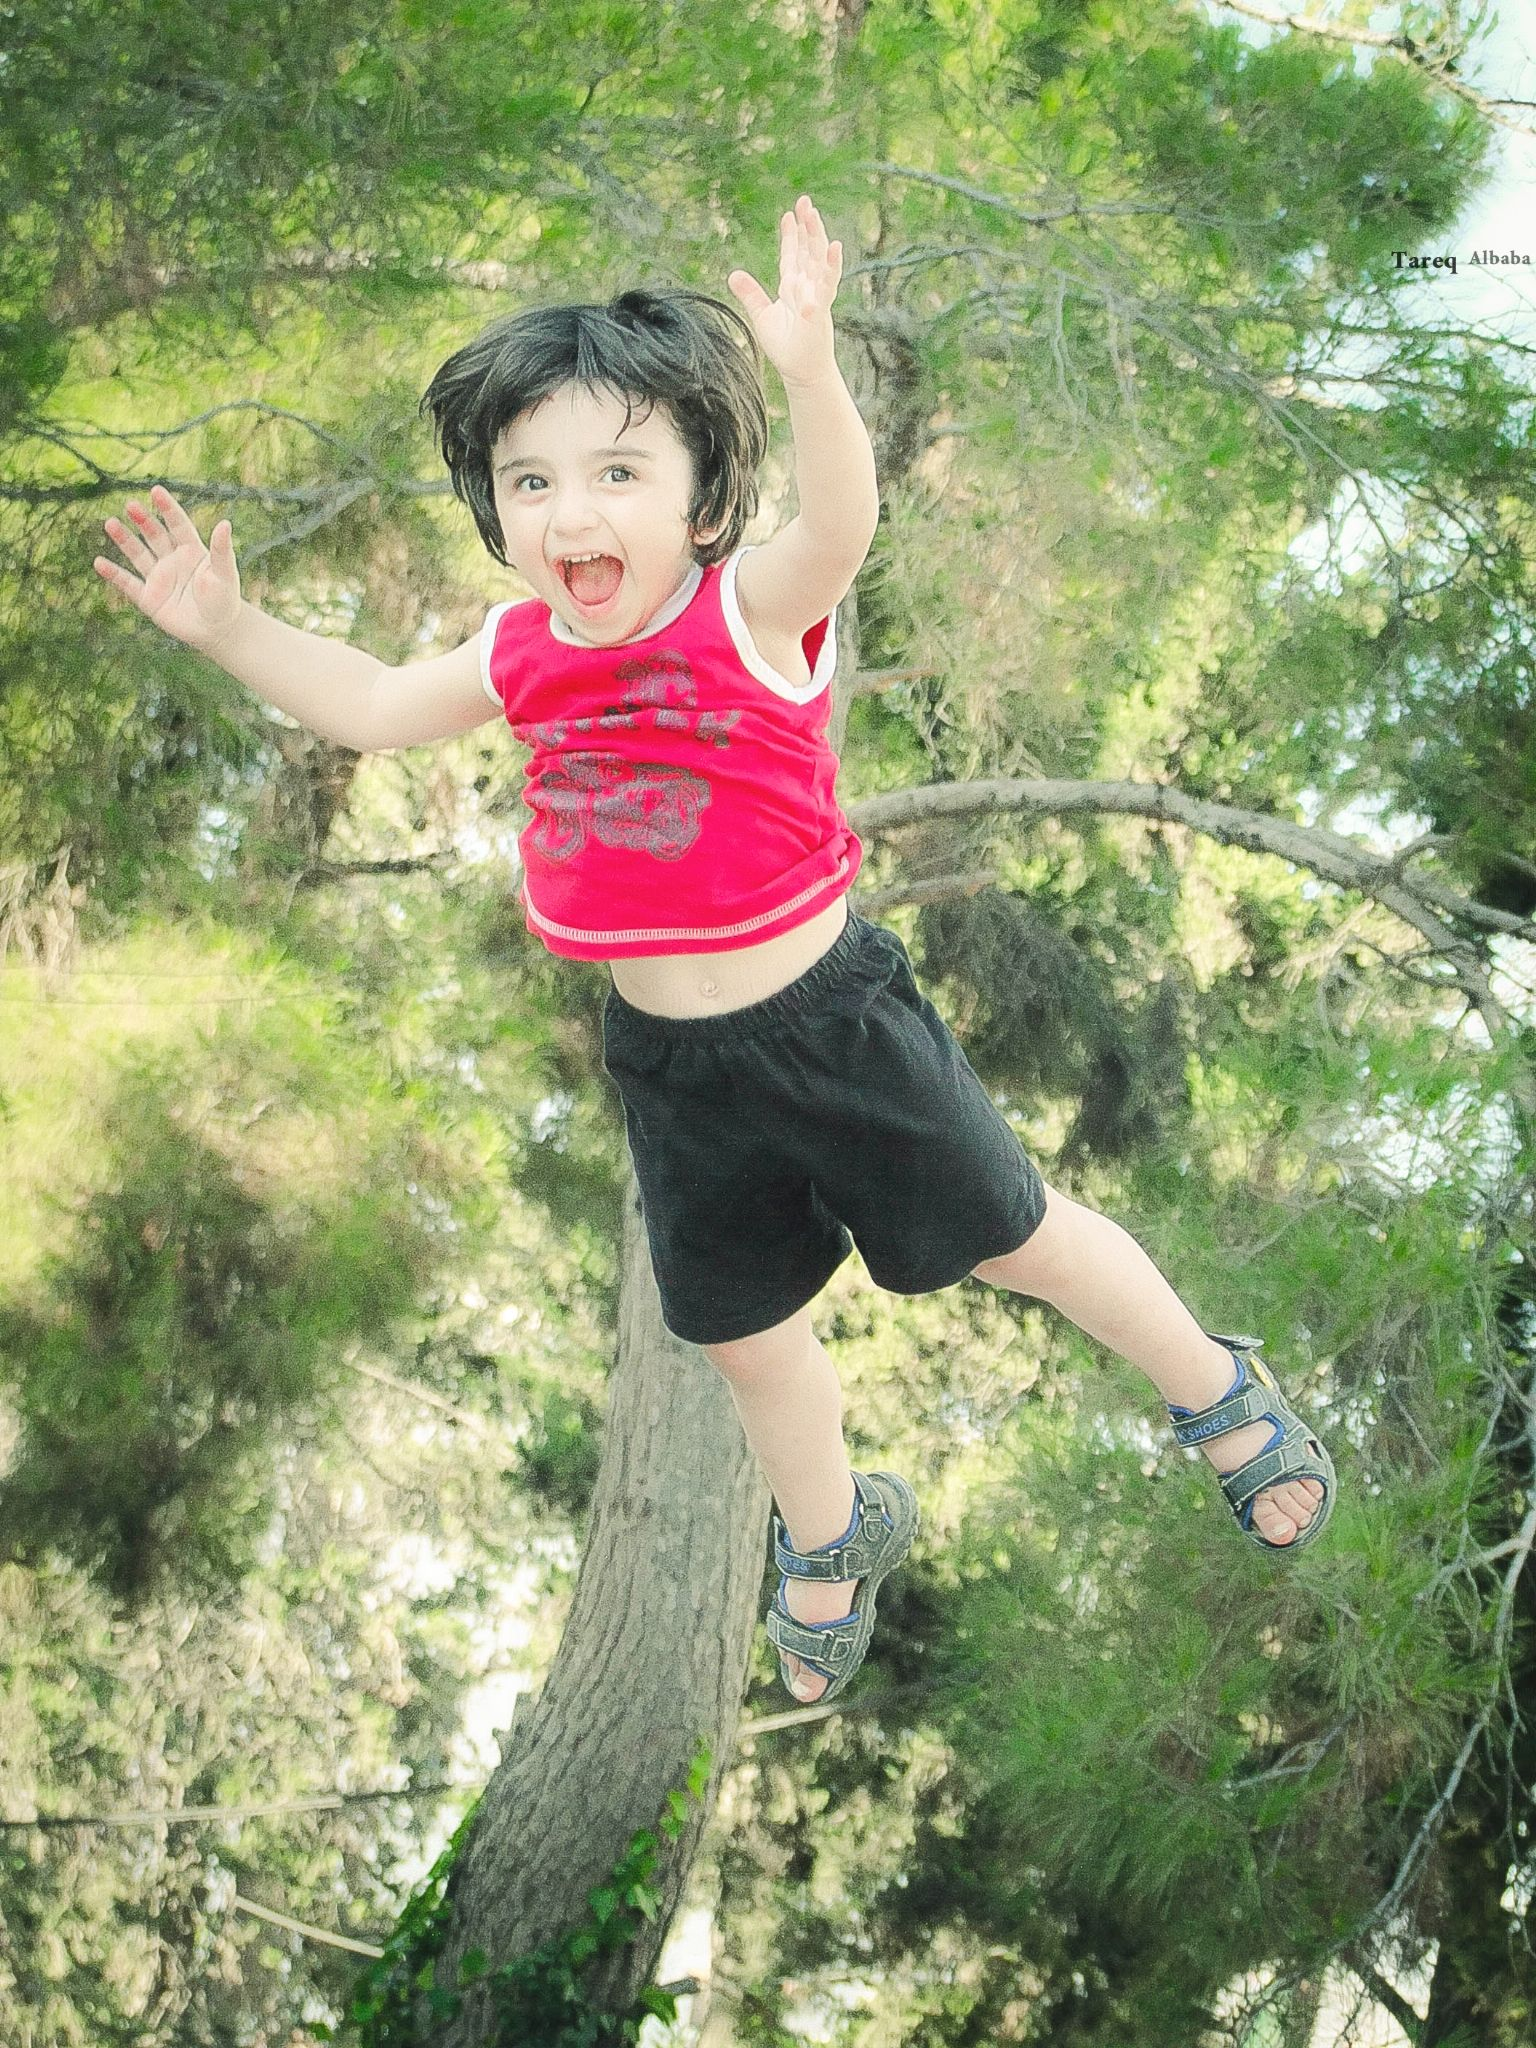 because he trusts his father ~ he enjoys flying   by Tareq Albaba